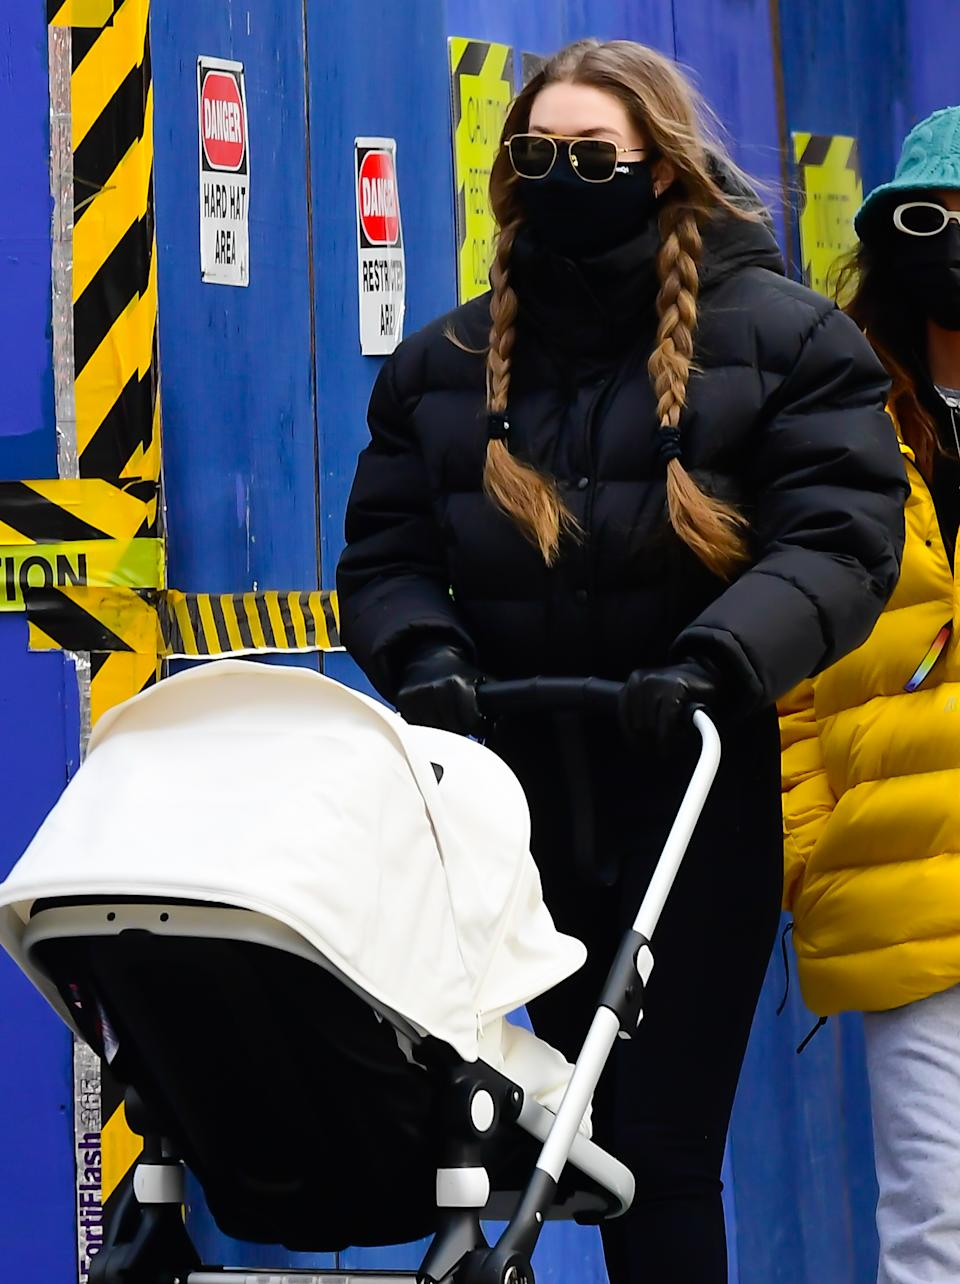 Gigi Hadid in New York City on Jan. 11 wearing MasQd Ultra Sport Mask.  (Photo by Raymond Hall/GC Images)